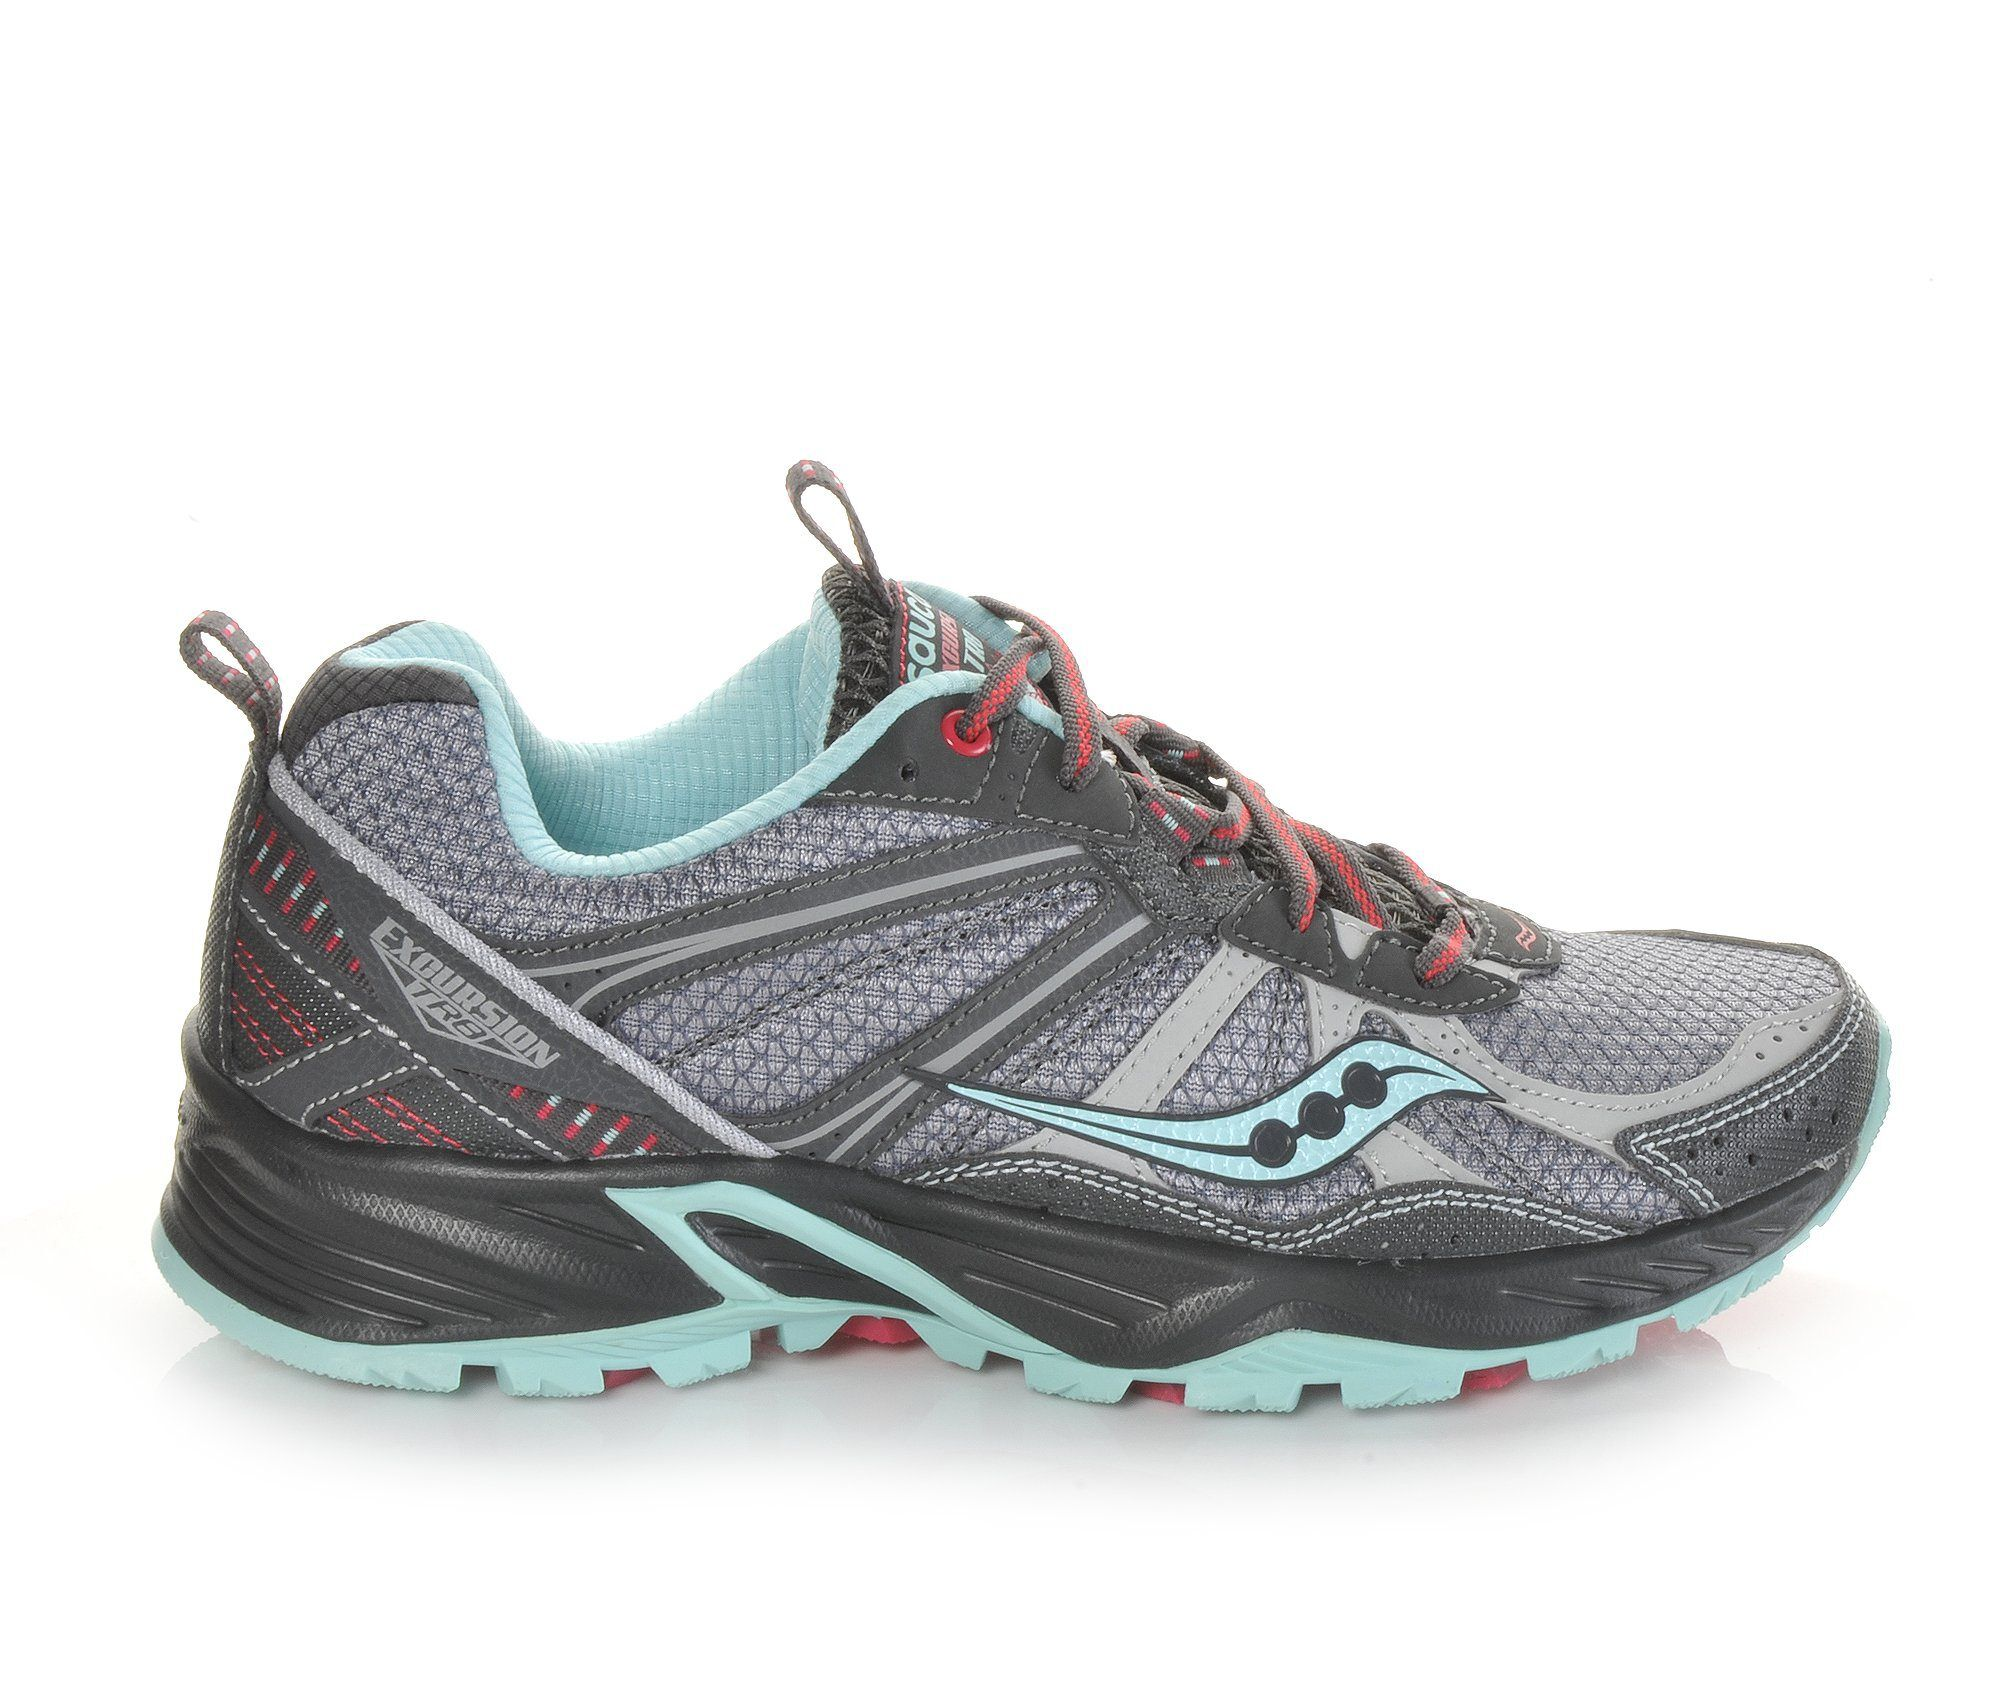 Images. Women's Saucony Excursion TR 8 Running Shoes